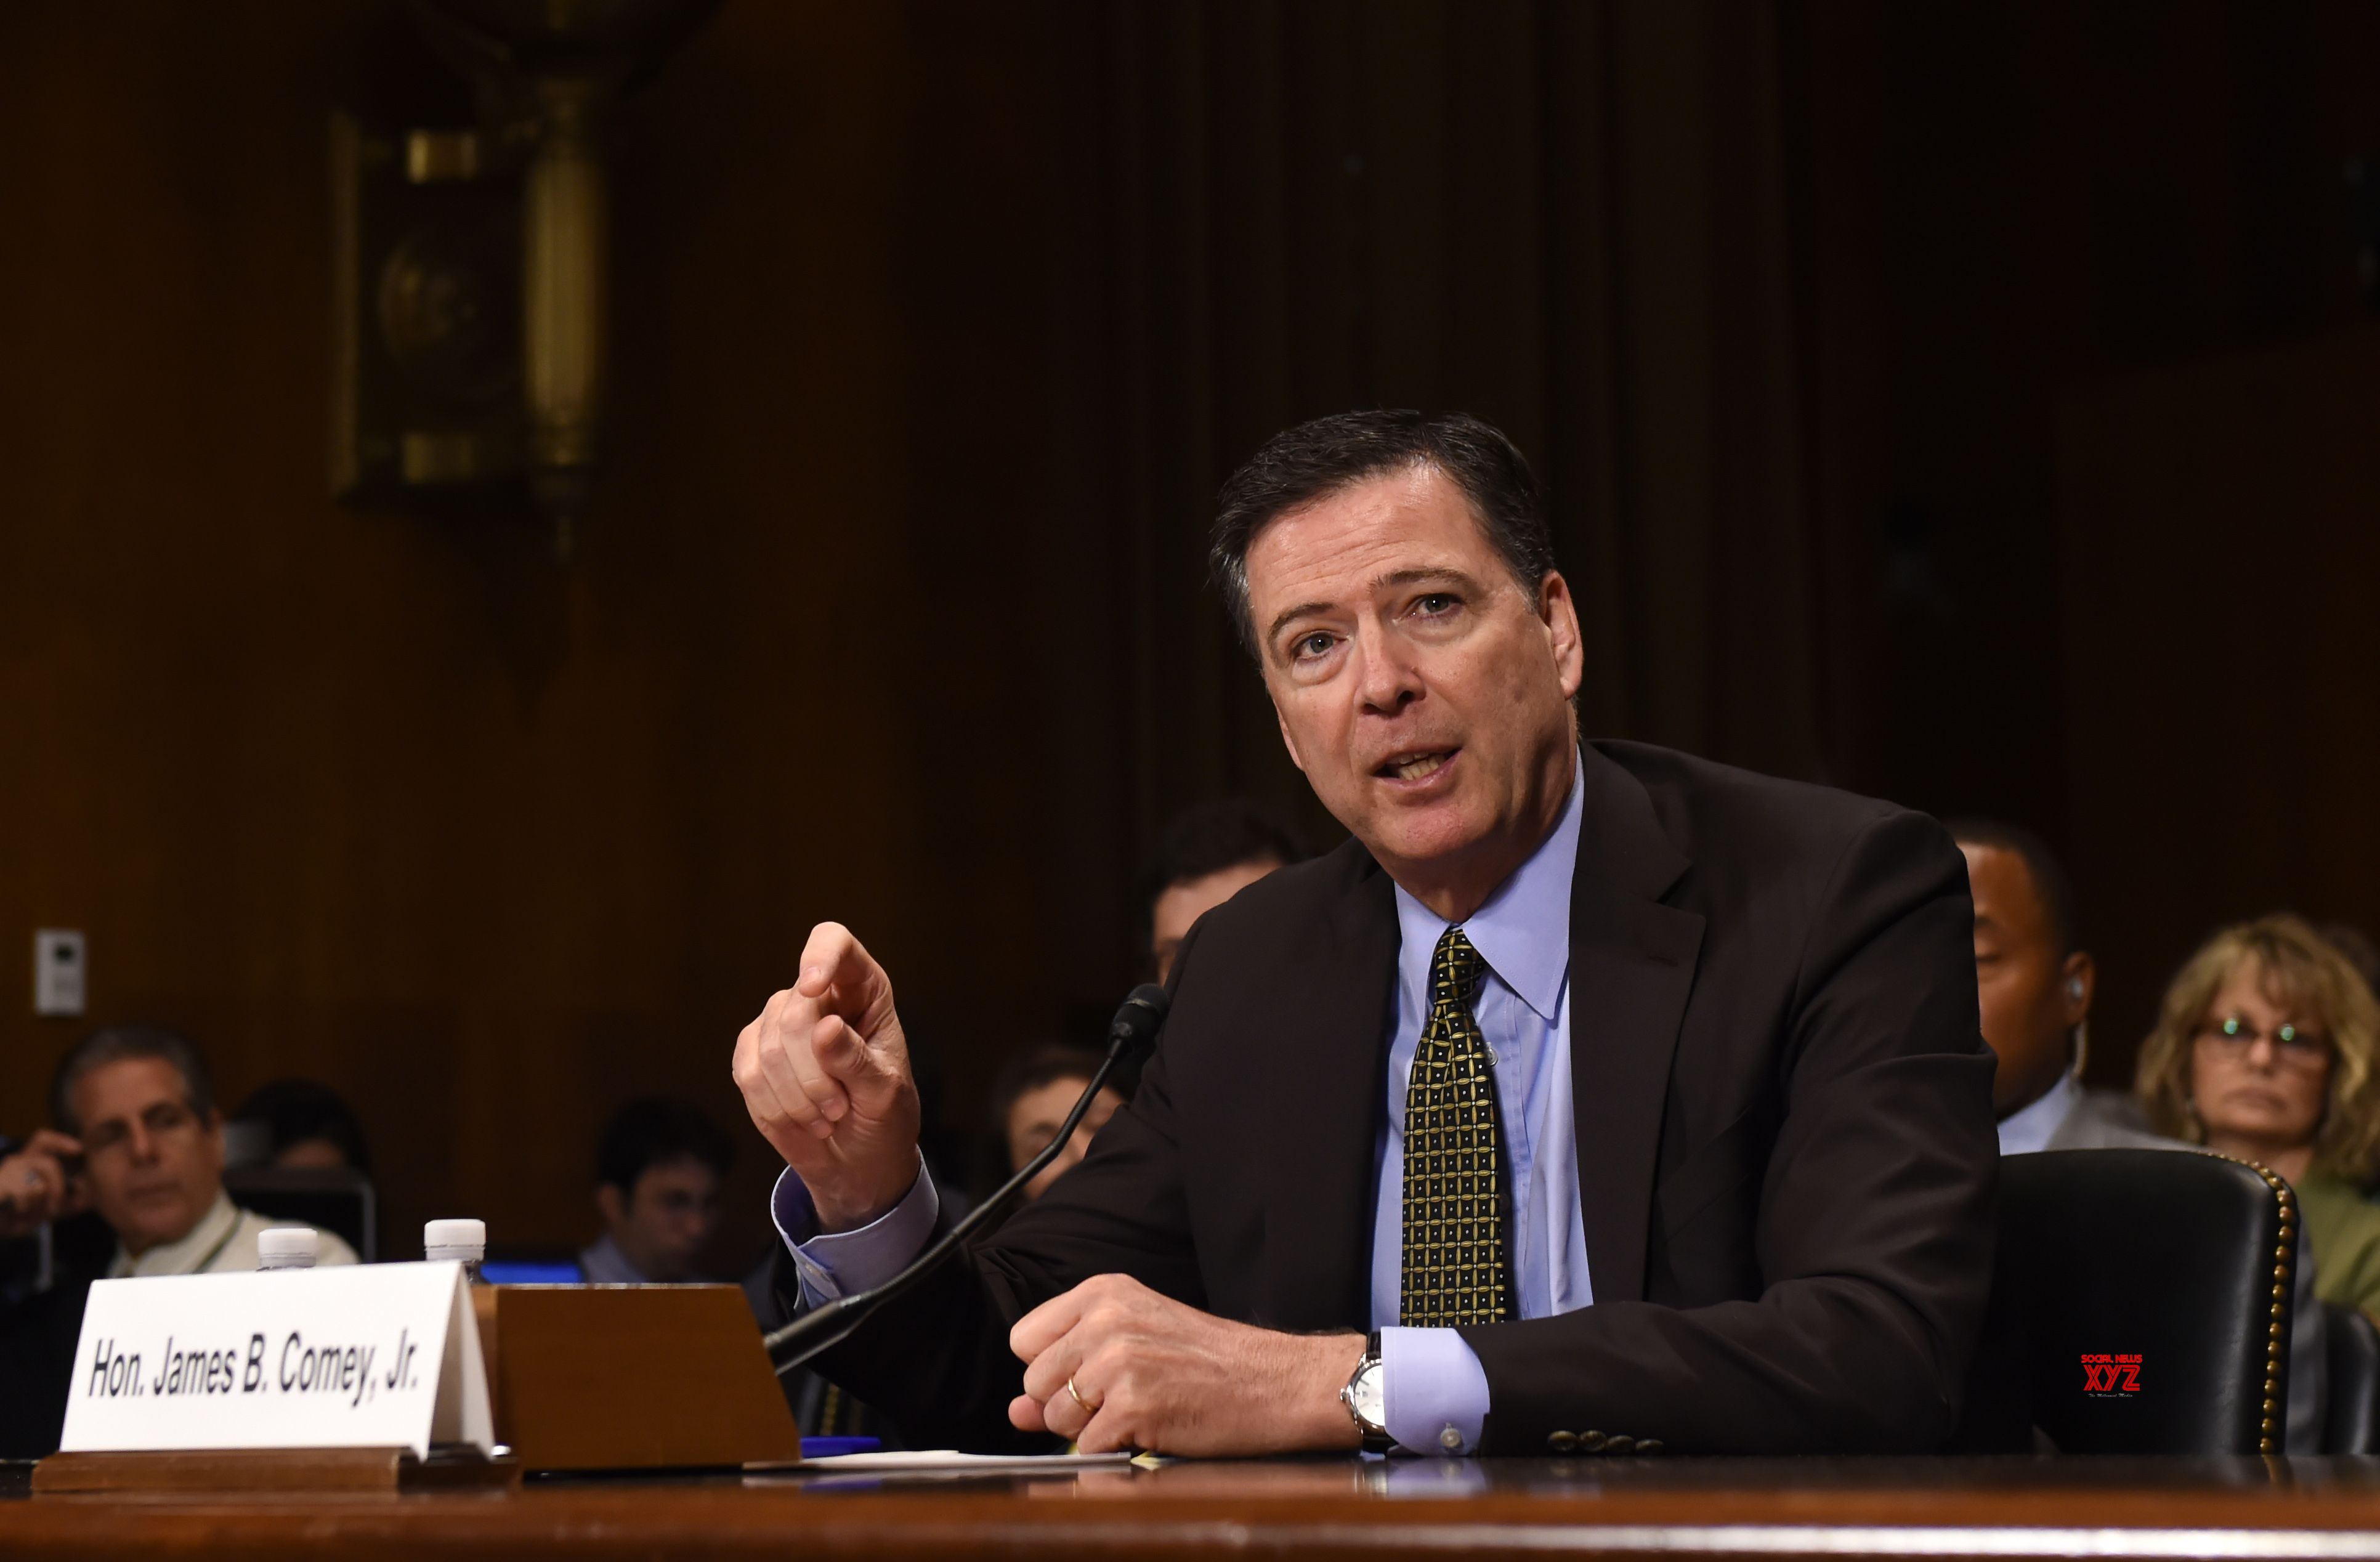 Comey 'broke norms but not biased', says agency watchdog report